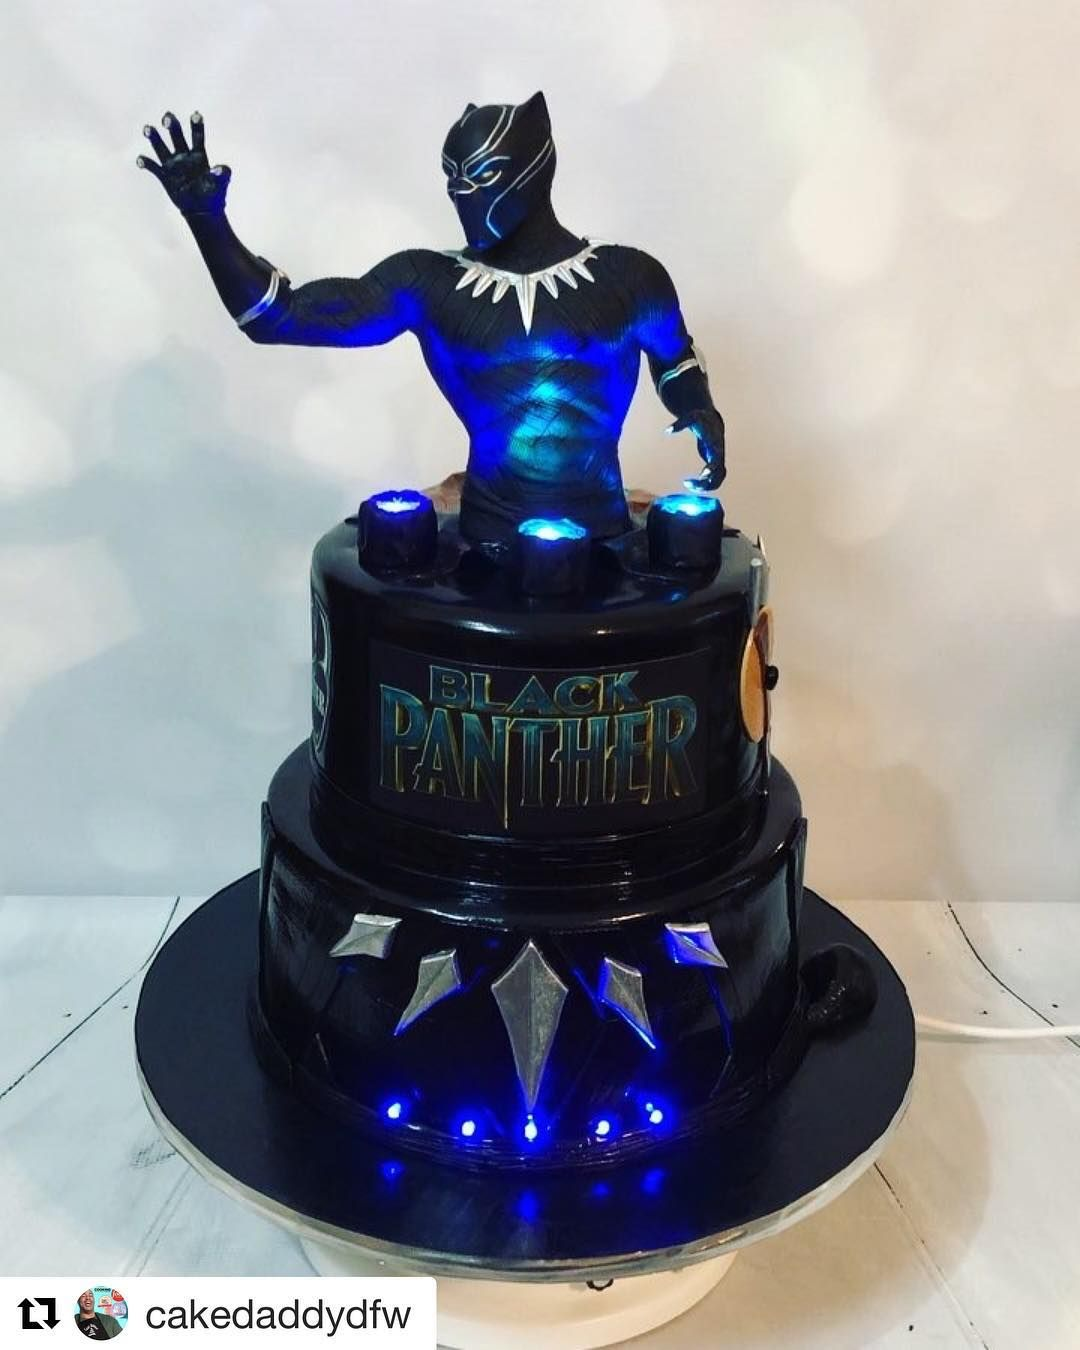 Check Out This Awesome Cake By Tx Baker Cakedaddydfw